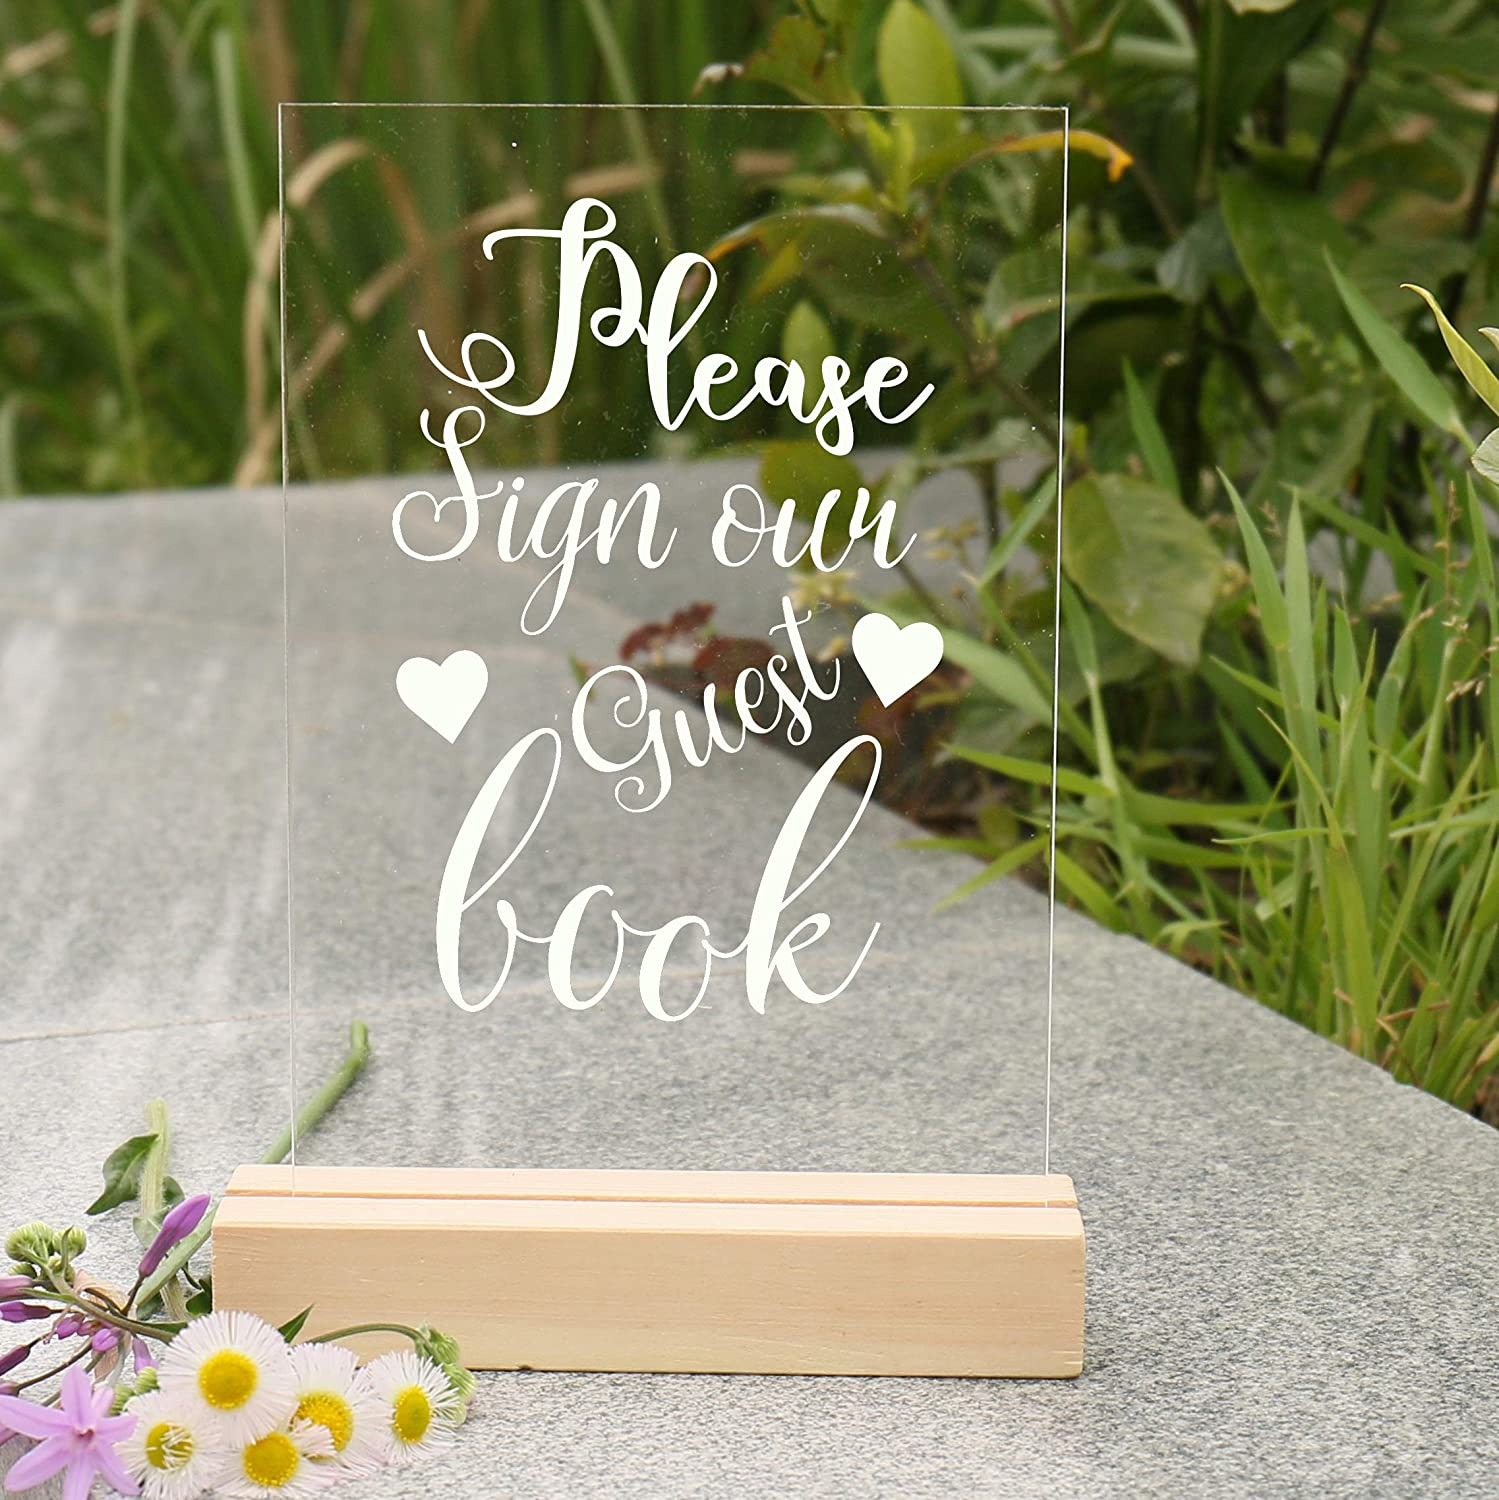 """4.7/""""x7 Clear Display Stand with Base Calligraphy Reception Photograph Prop Party Favors Decoration Memorial Guestbook etc Vinyl Letters Cards /& Gifts oitin Acrylic Wedding Sign"""